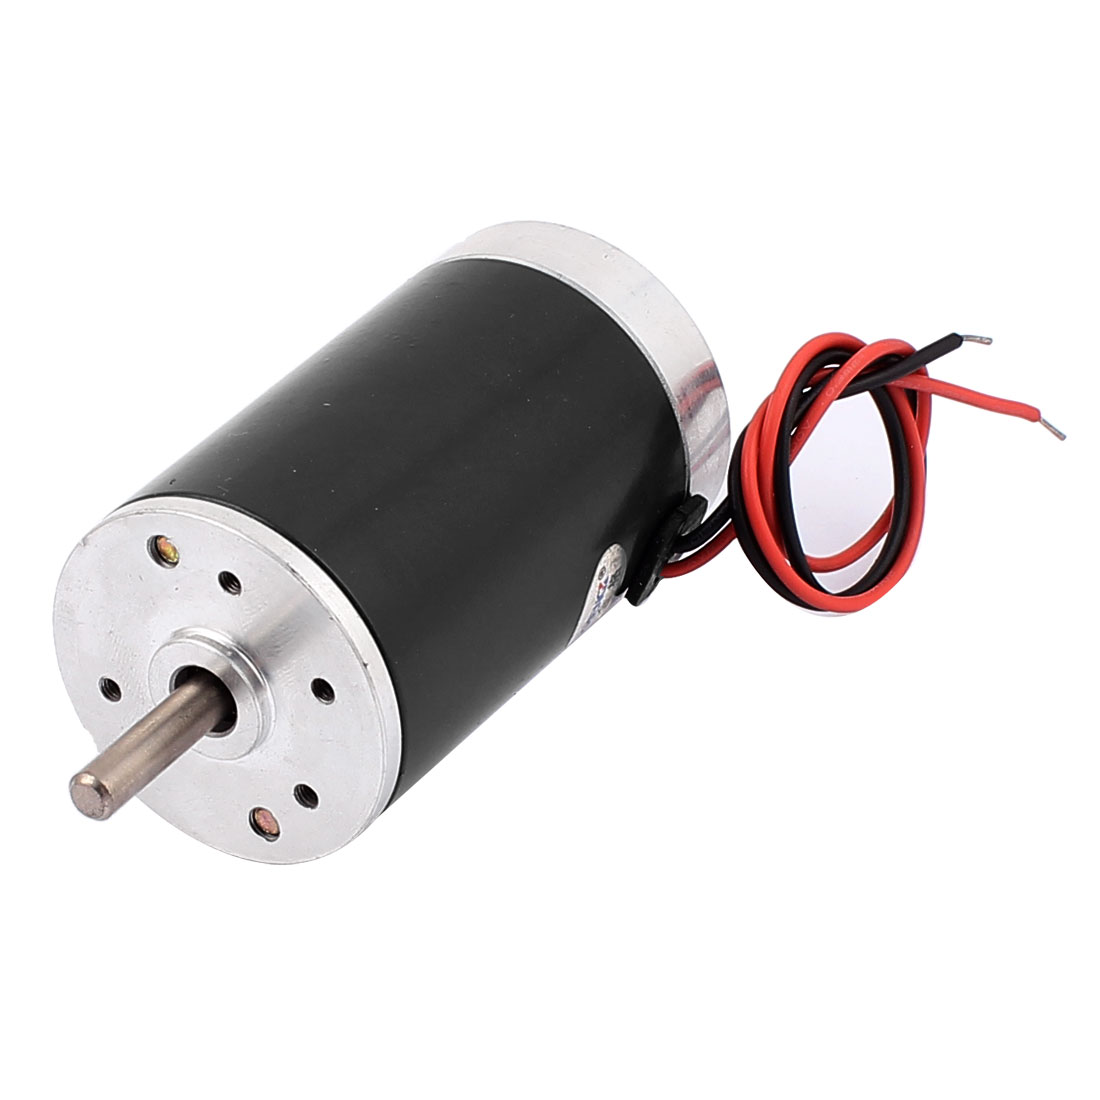 DC 24V 7W 4000RPM 38mm Dia Magnetic Gear Box Motor